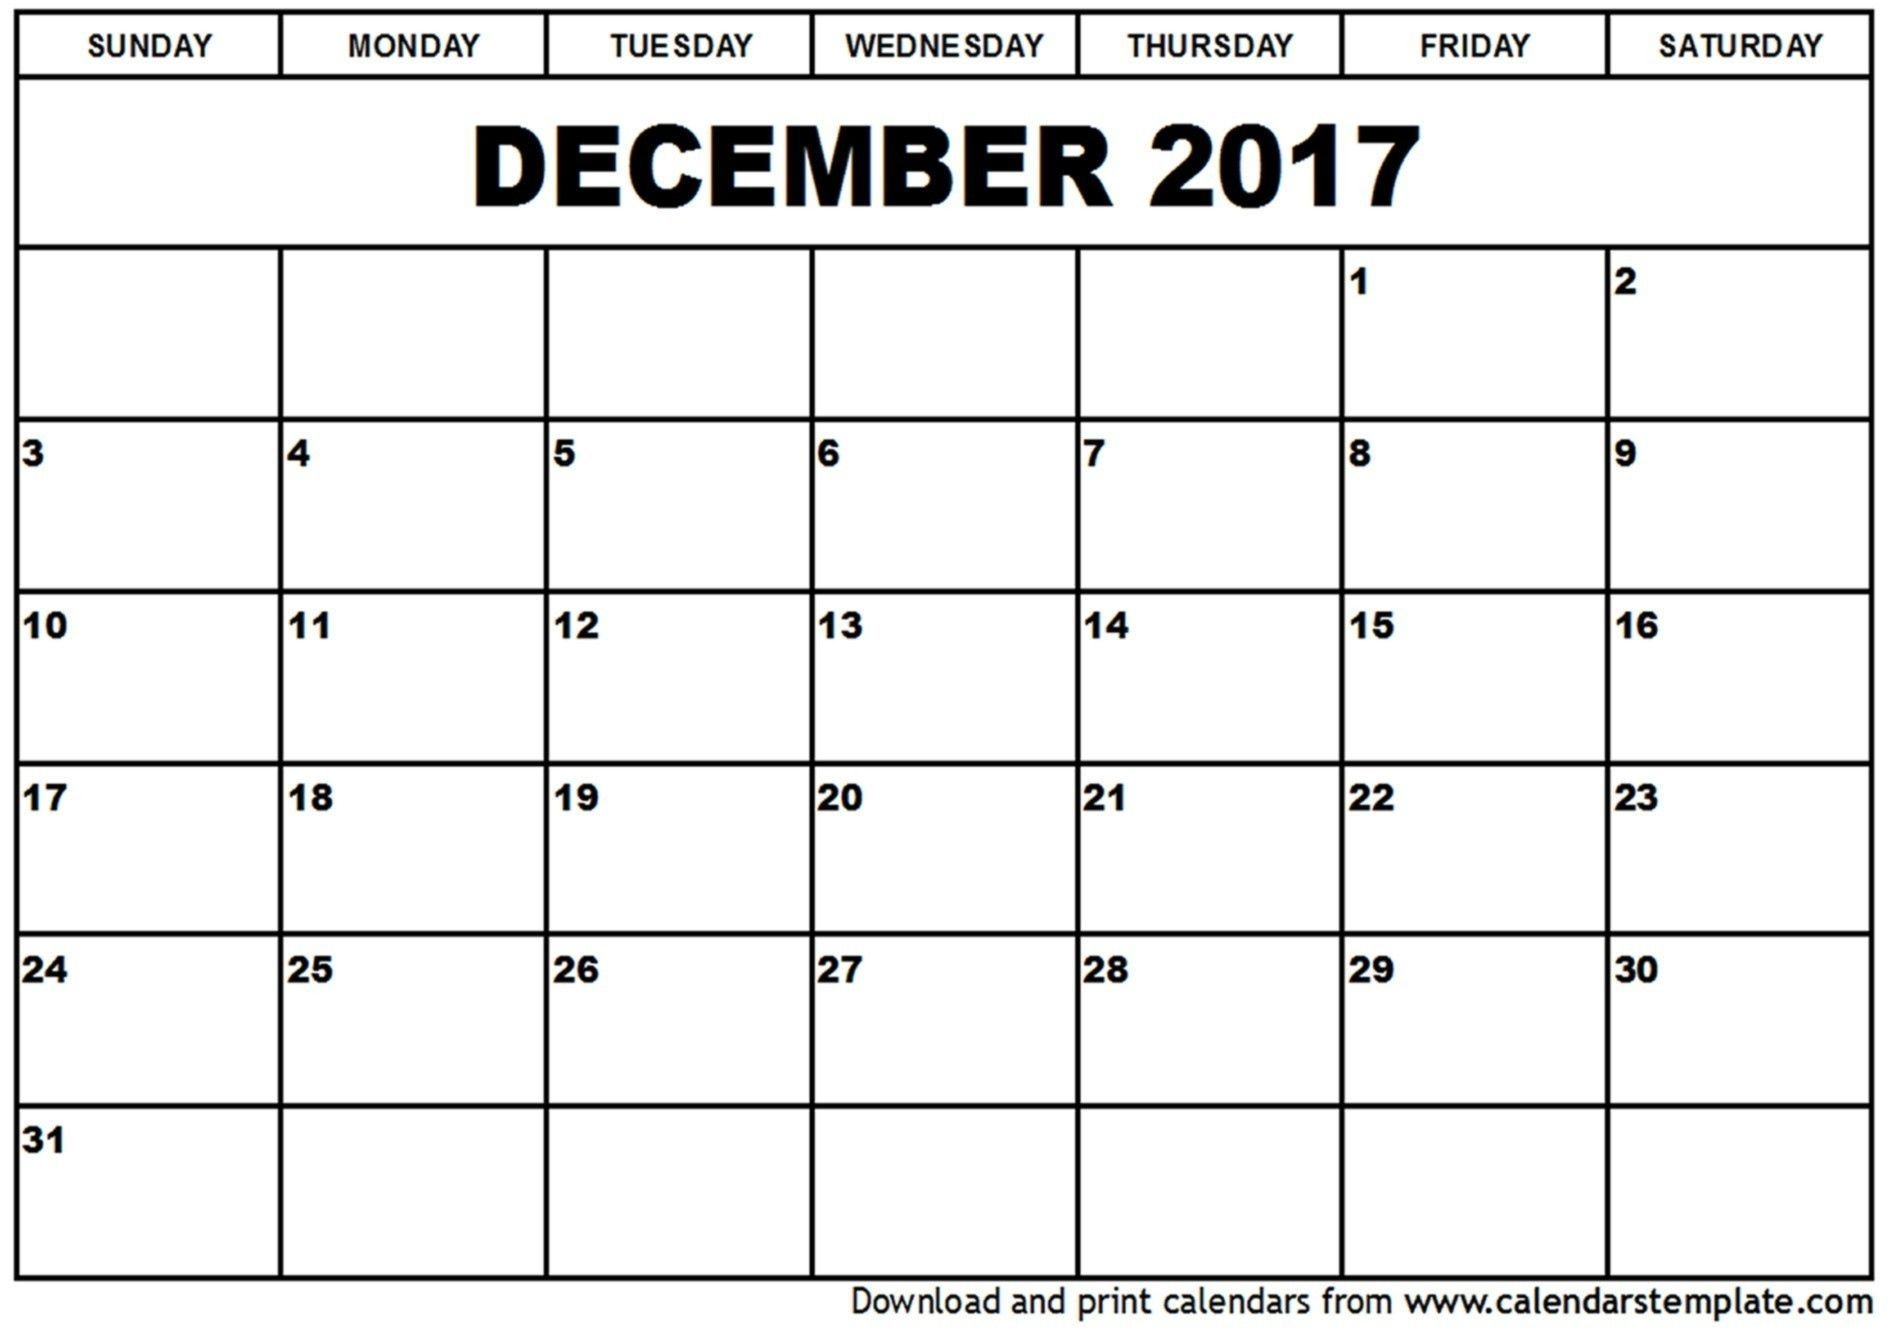 Monthly Calendar I Can Type In In 2020 | Calendar Printables